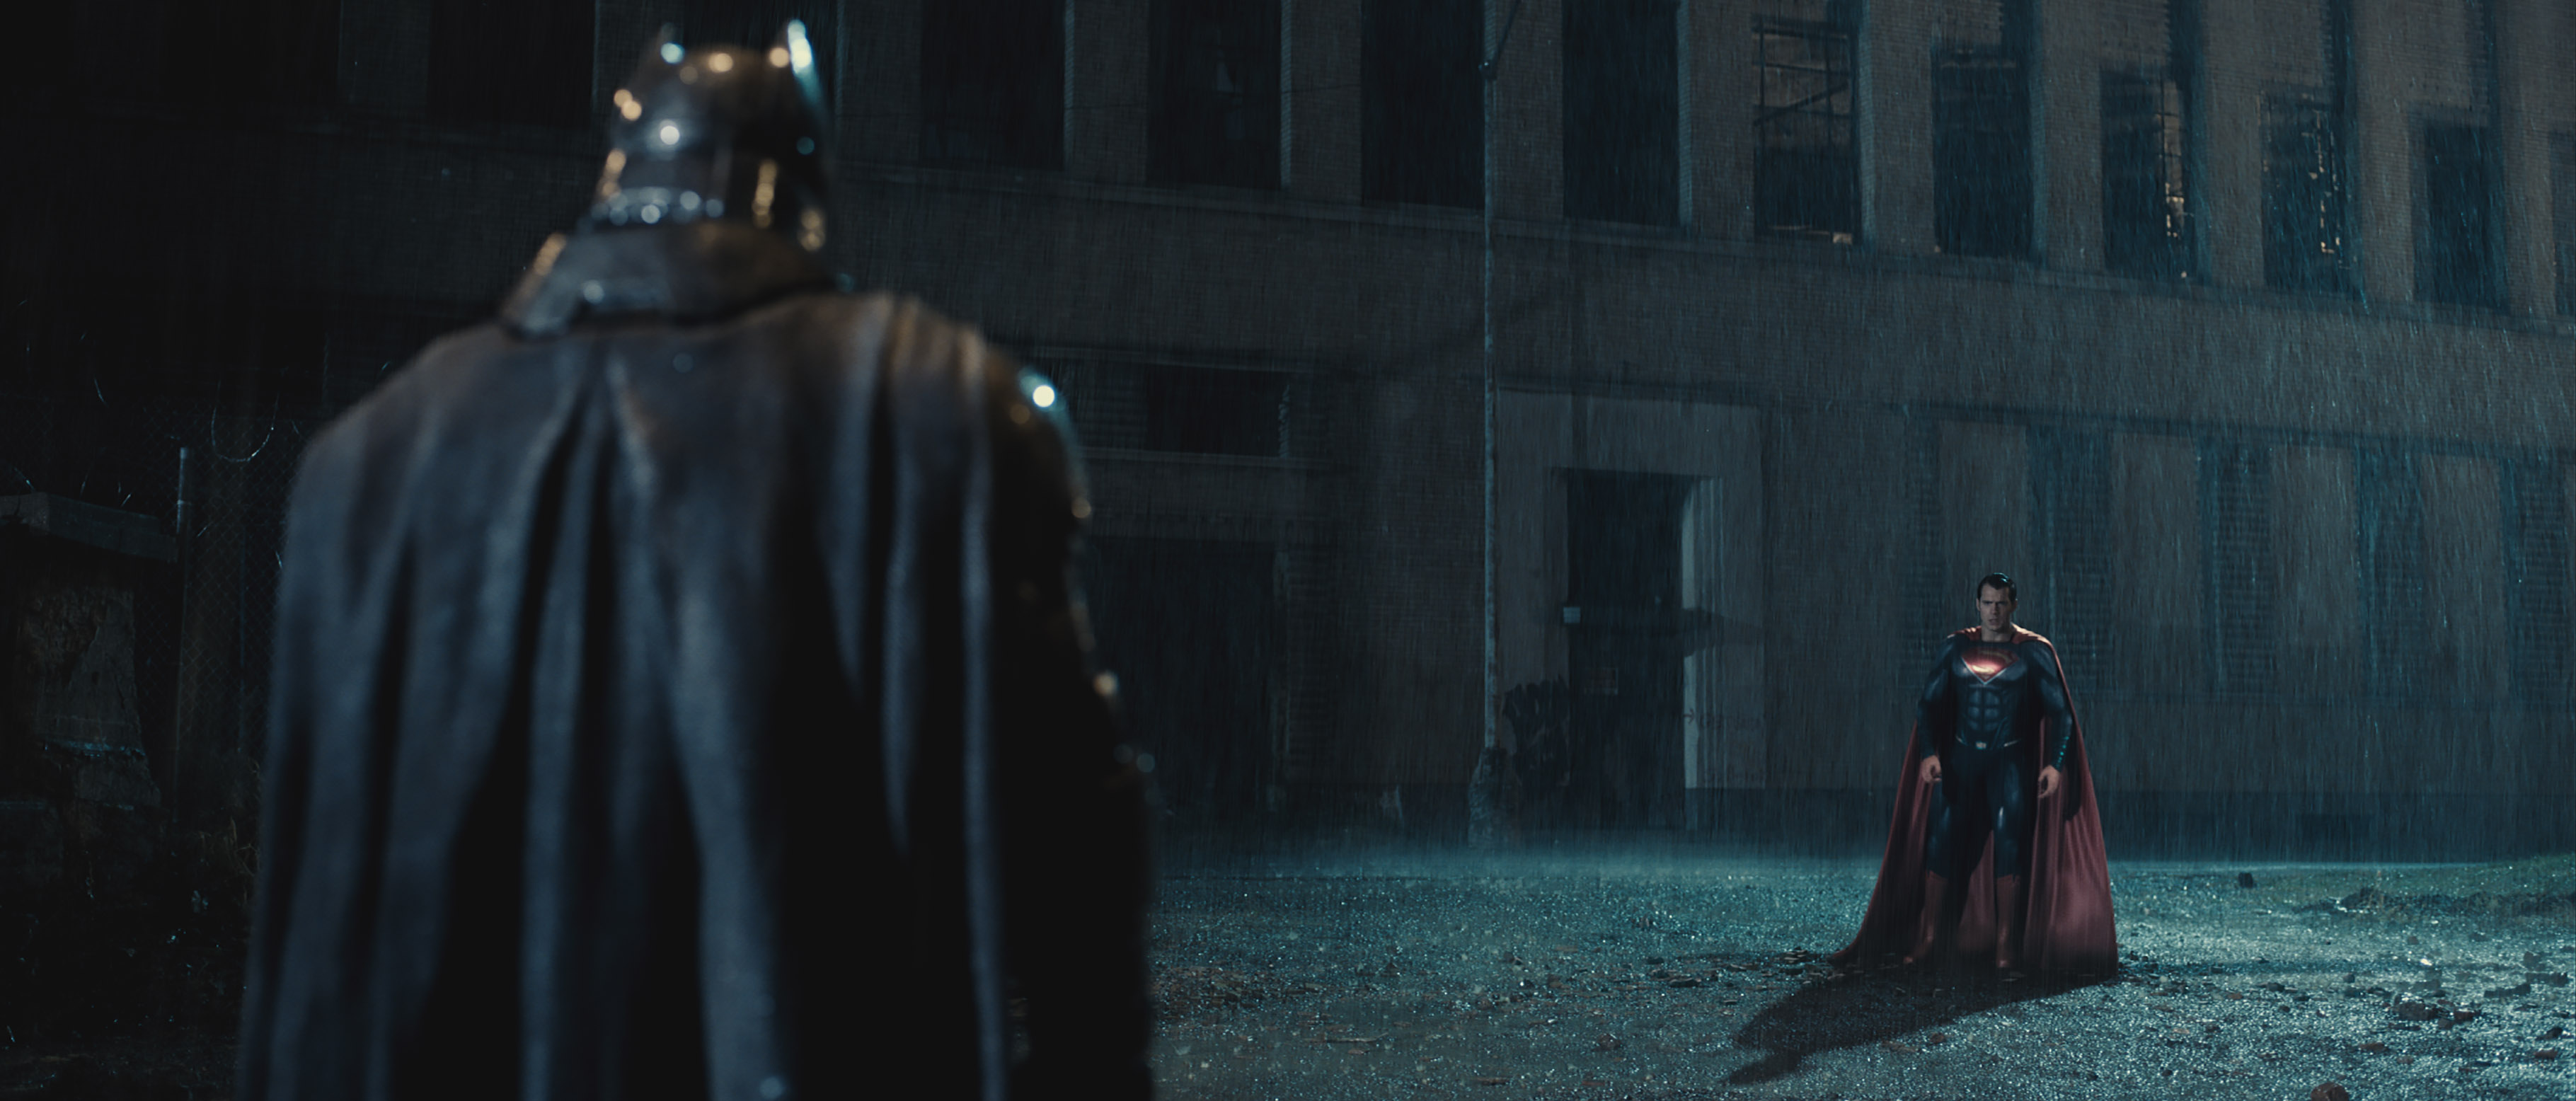 batman-v-superman-extended-cut-image-1